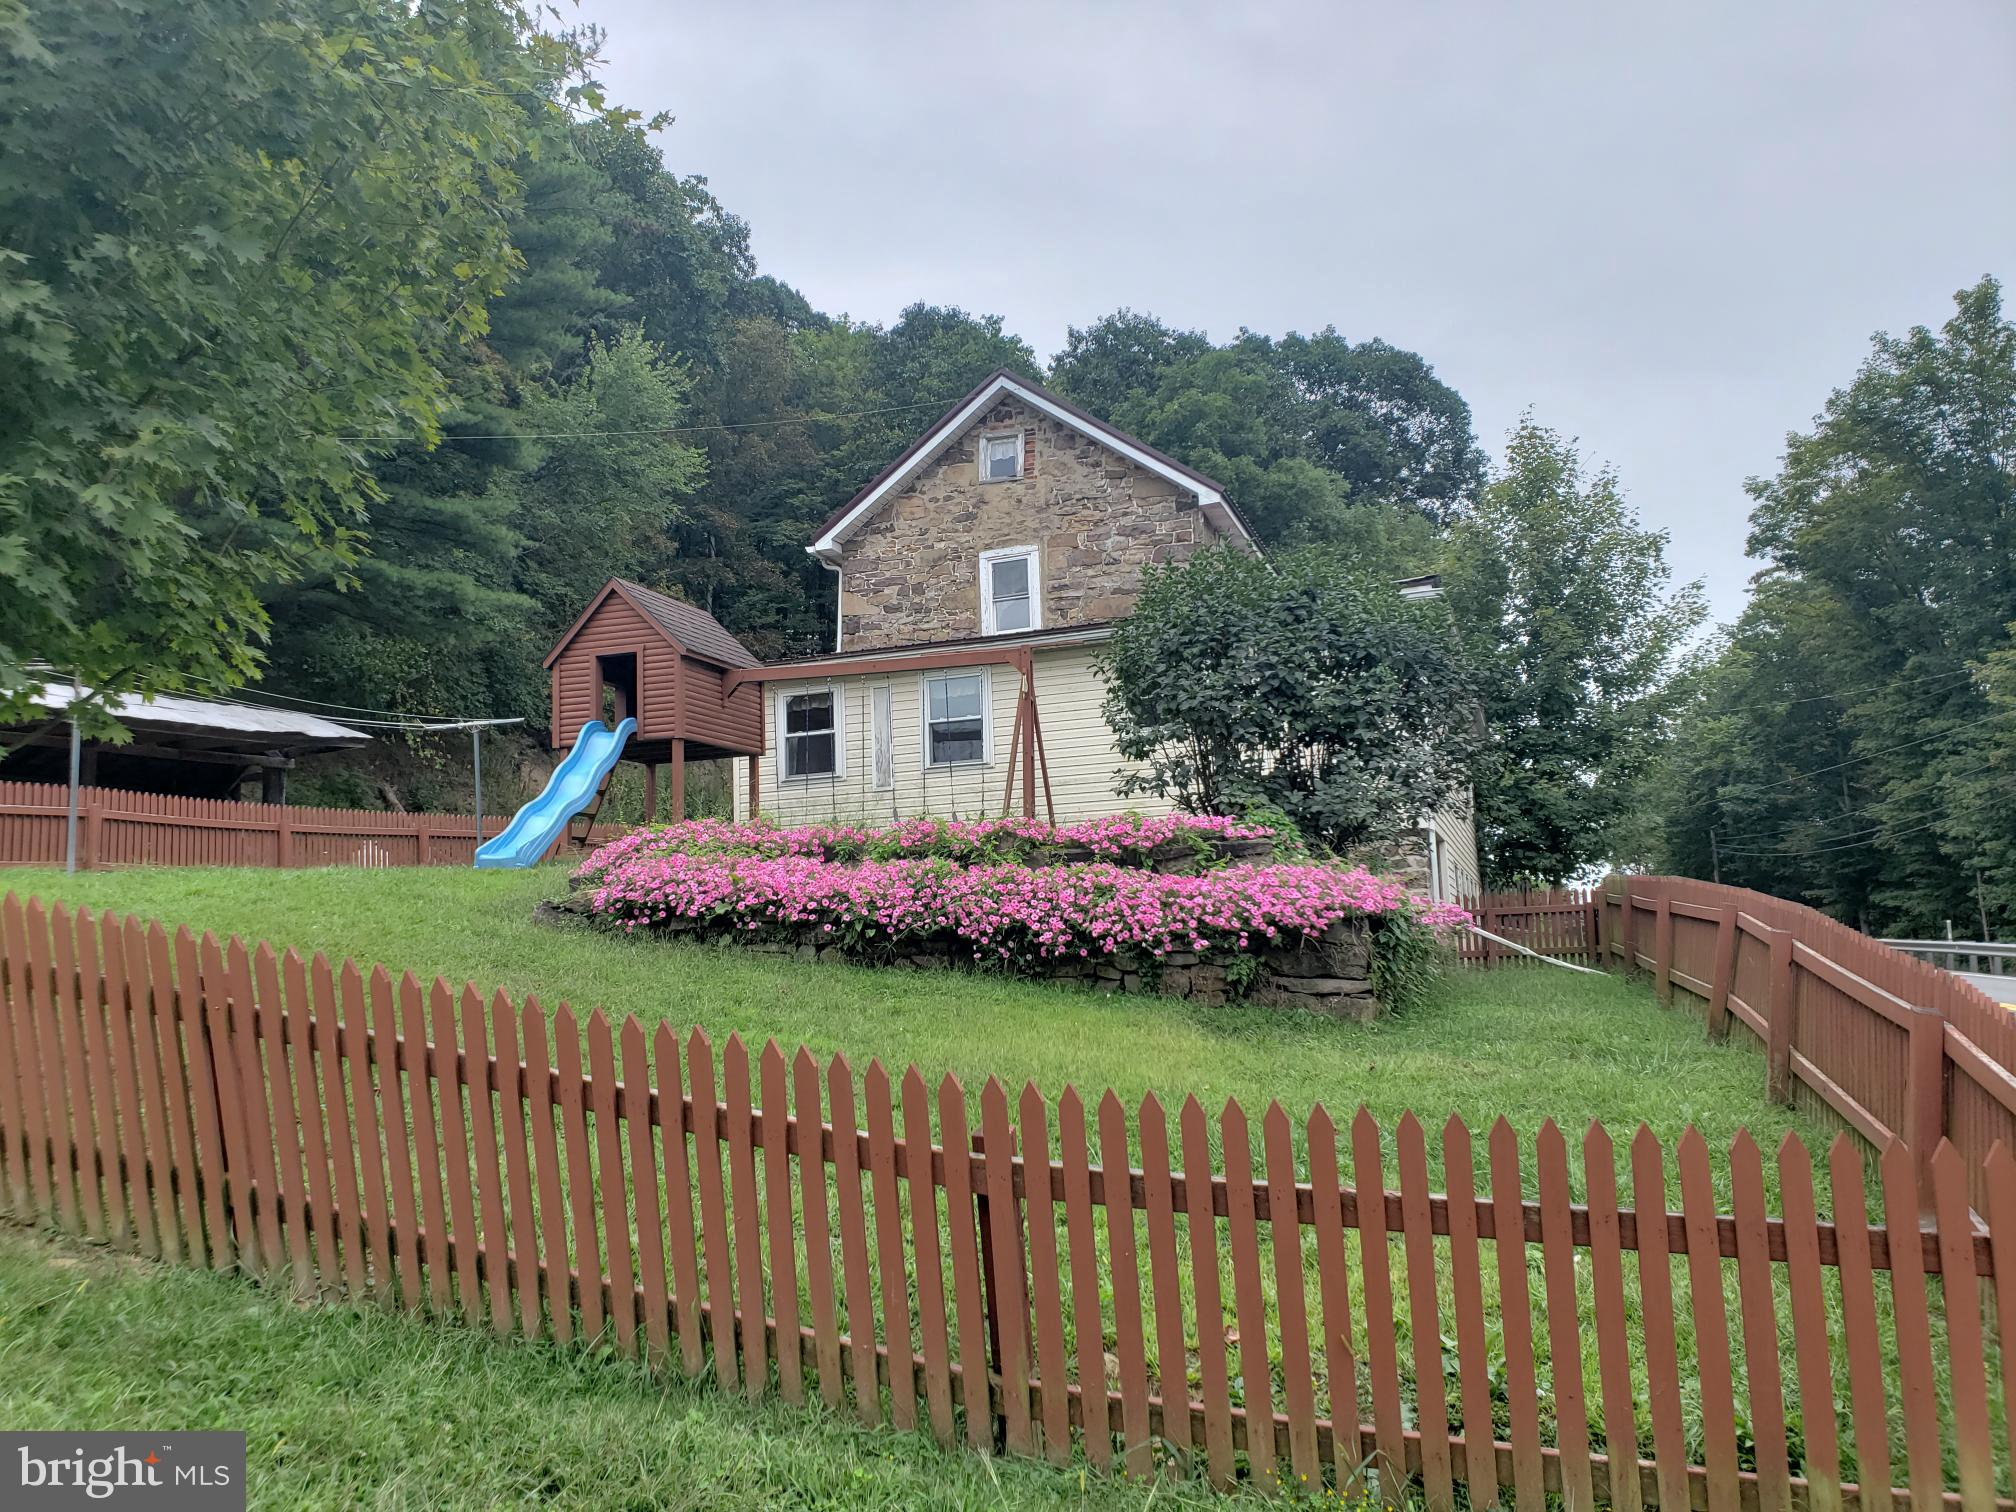 4262 ROUTE 104, MOUNT PLEASANT MILLS, PA 17853